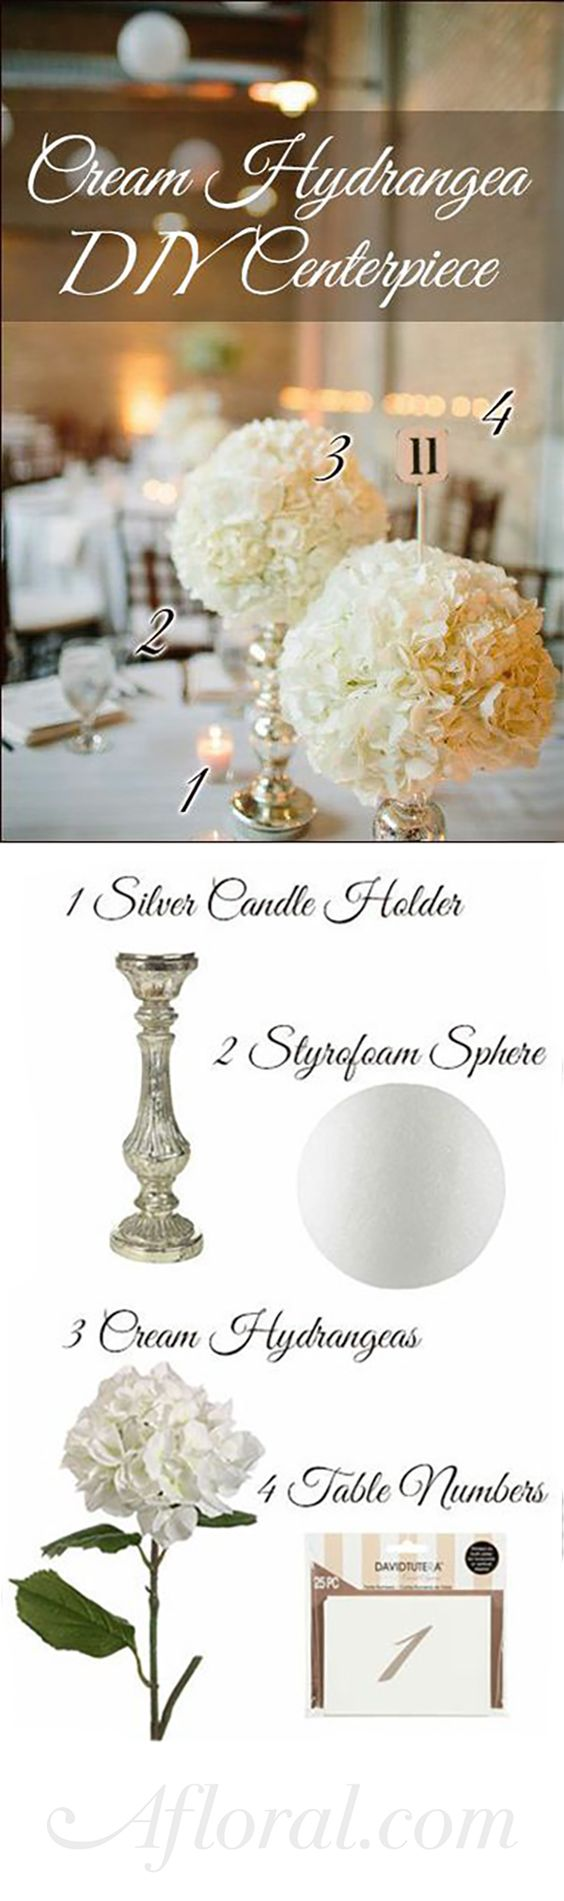 Wedding centerpieces diy cheap images wedding dress for Wedding dress vase centerpiece